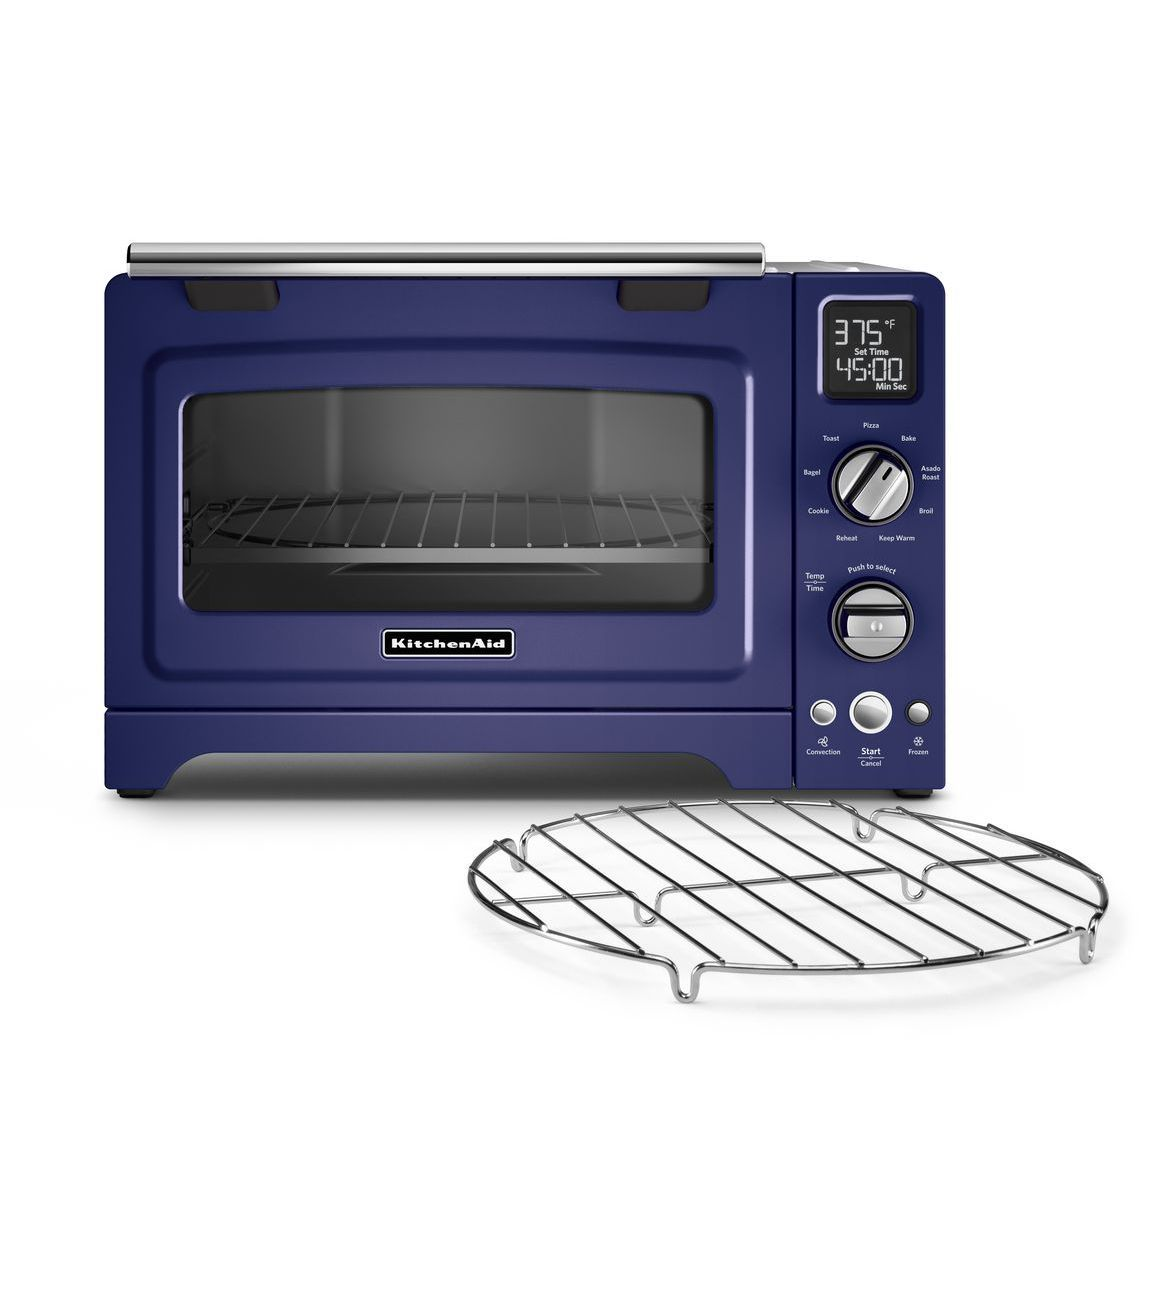 Kitchenaid 12 Convection Digital Countertop Oven Kco275